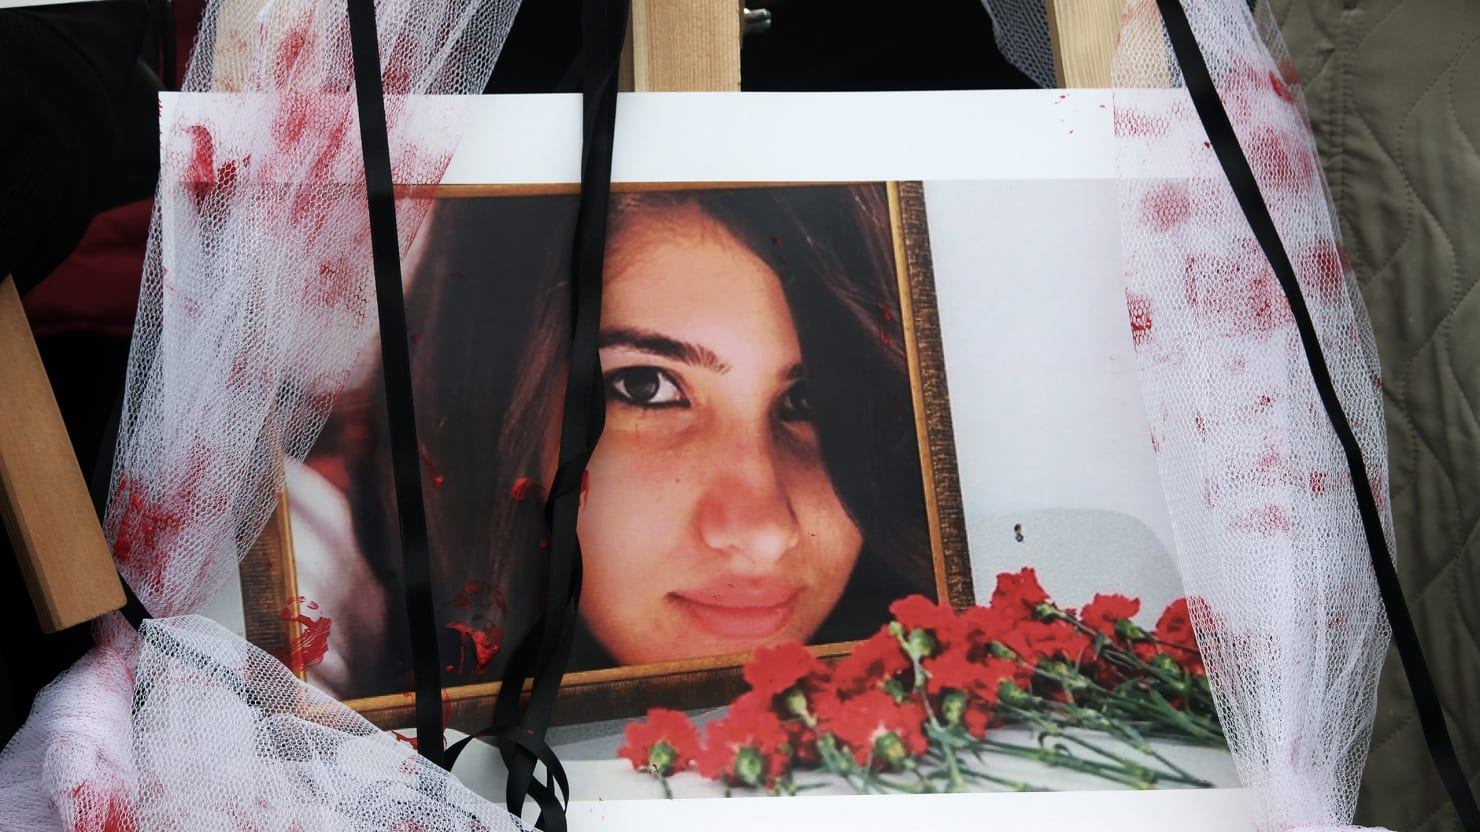 The Thwarted Rape and Gruesome Murder That's Shaken Turkey